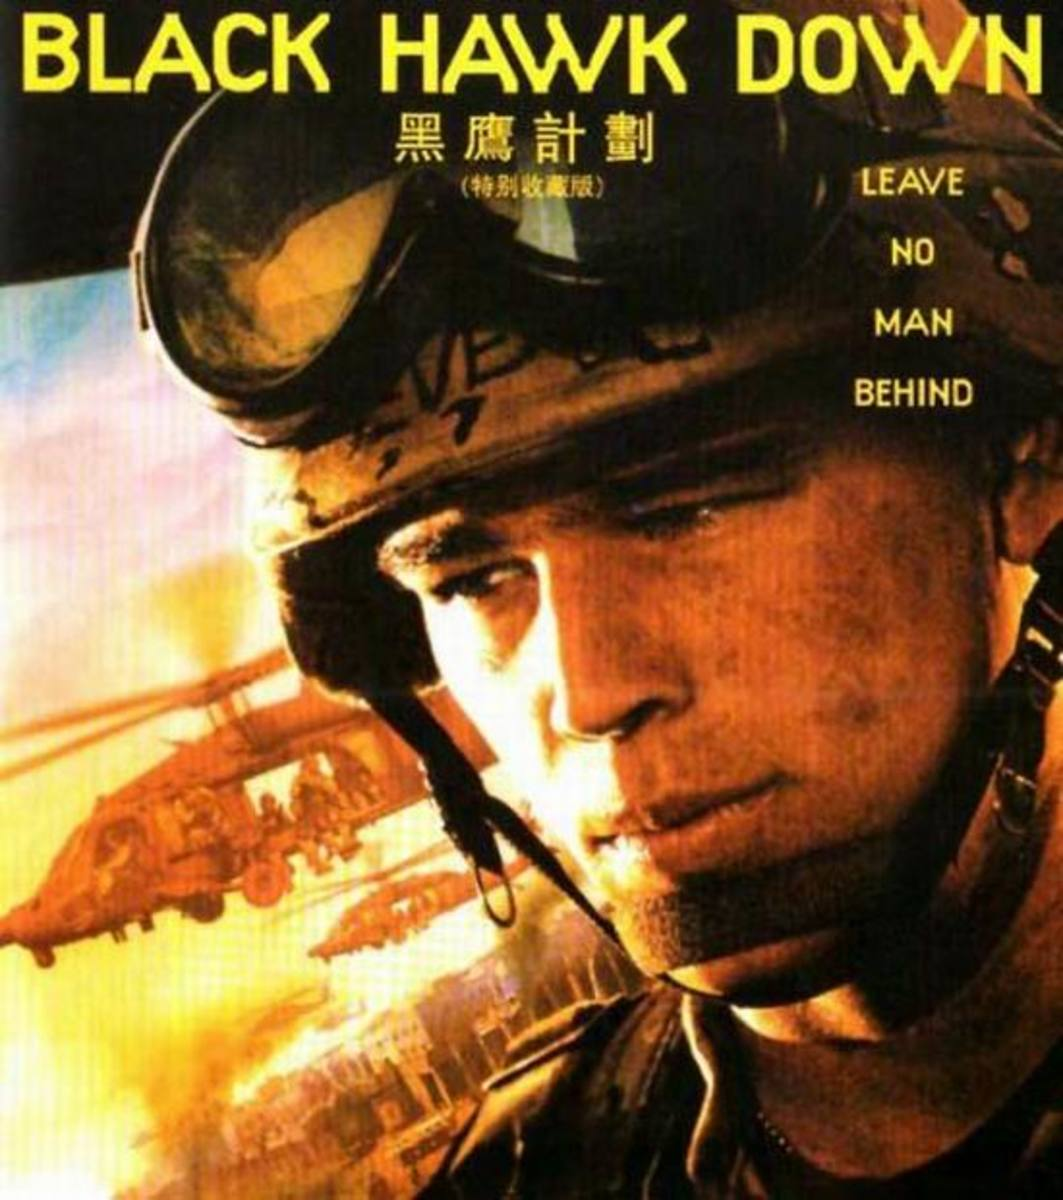 Black Hawk Down (2001) Japanese poster